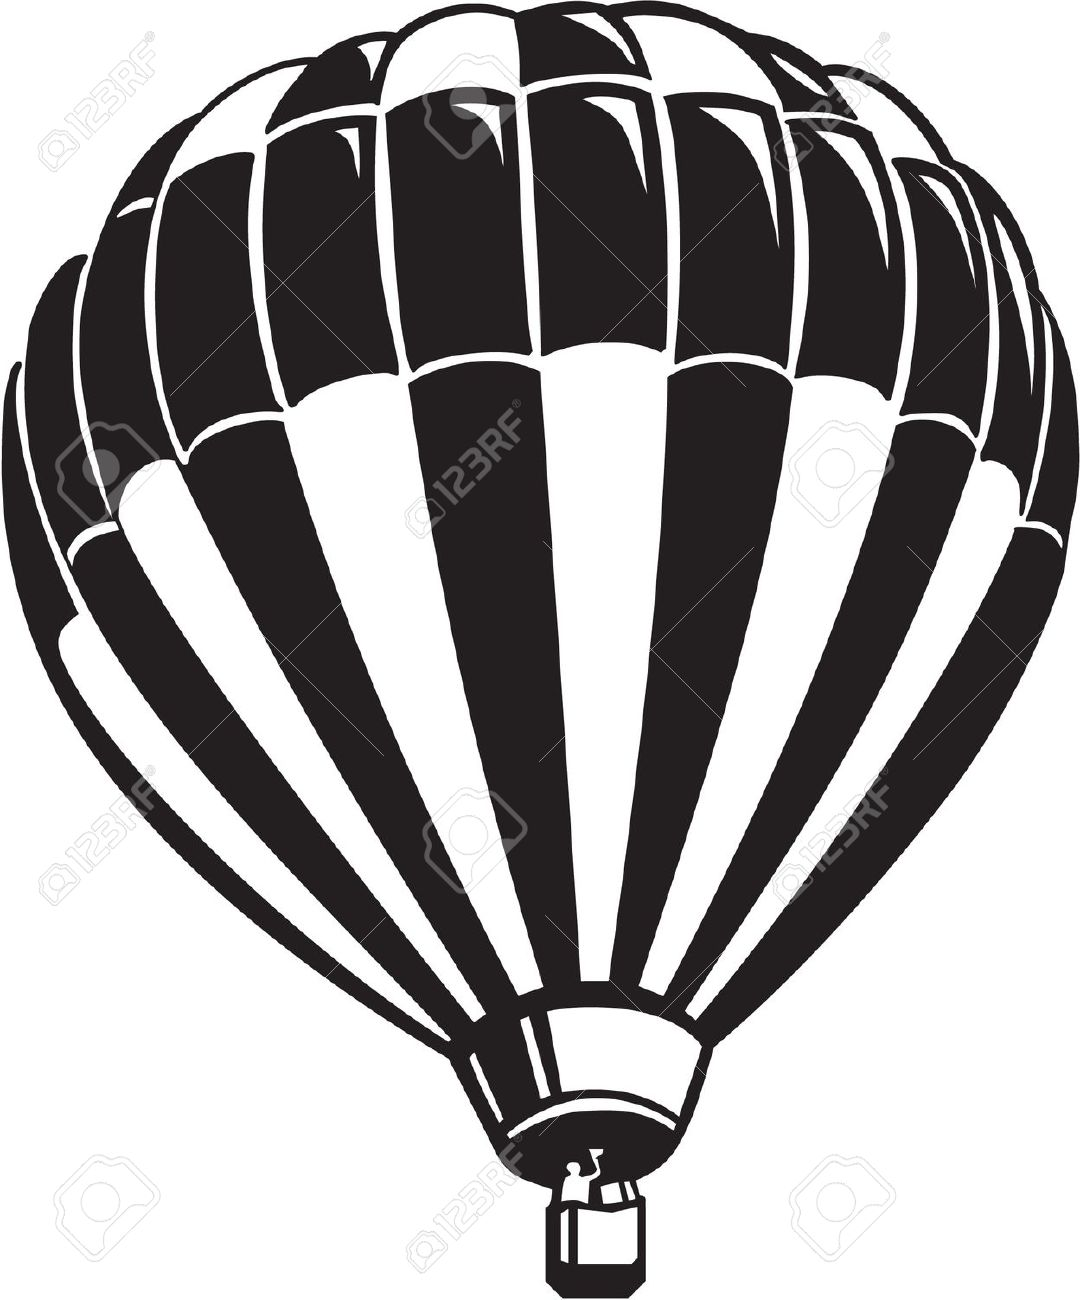 1080x1300 Aerial Clipart Black And White